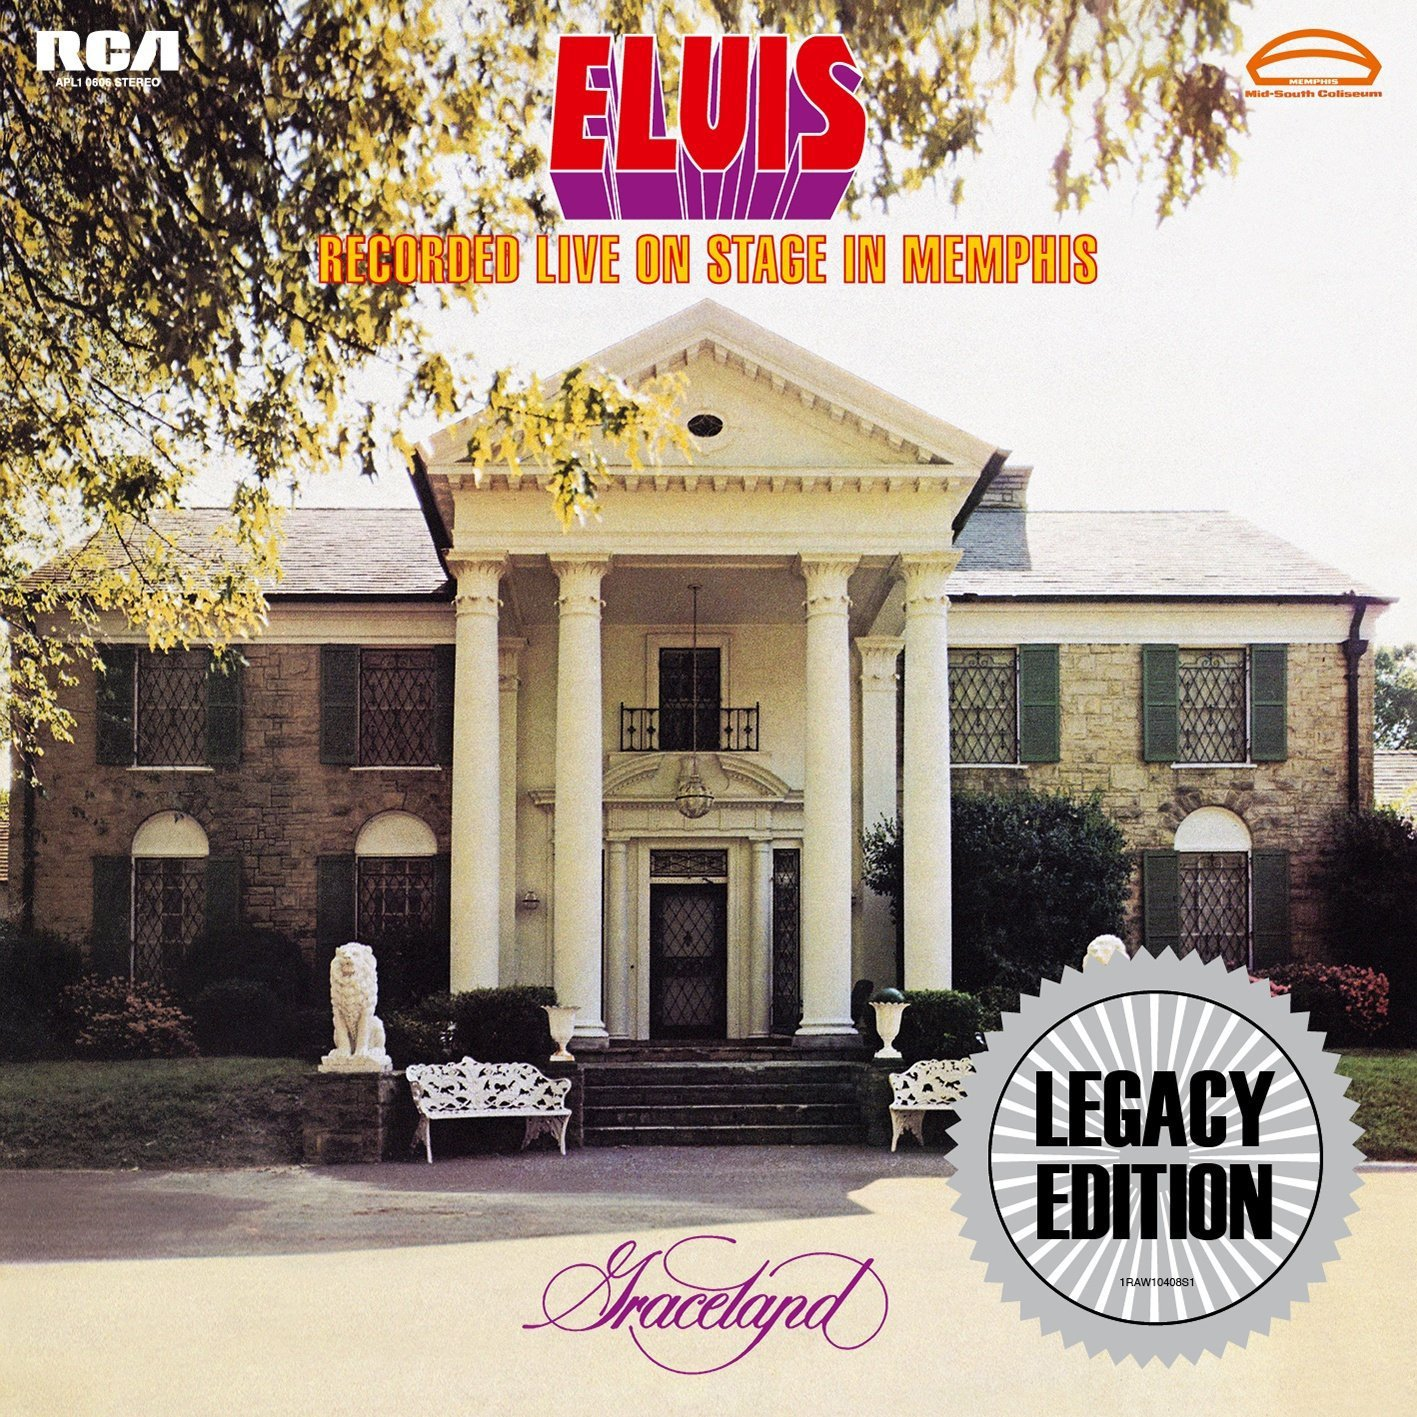 Elvis Recorded Live on Stage in Memphis (Legacy Edition) by Legacy